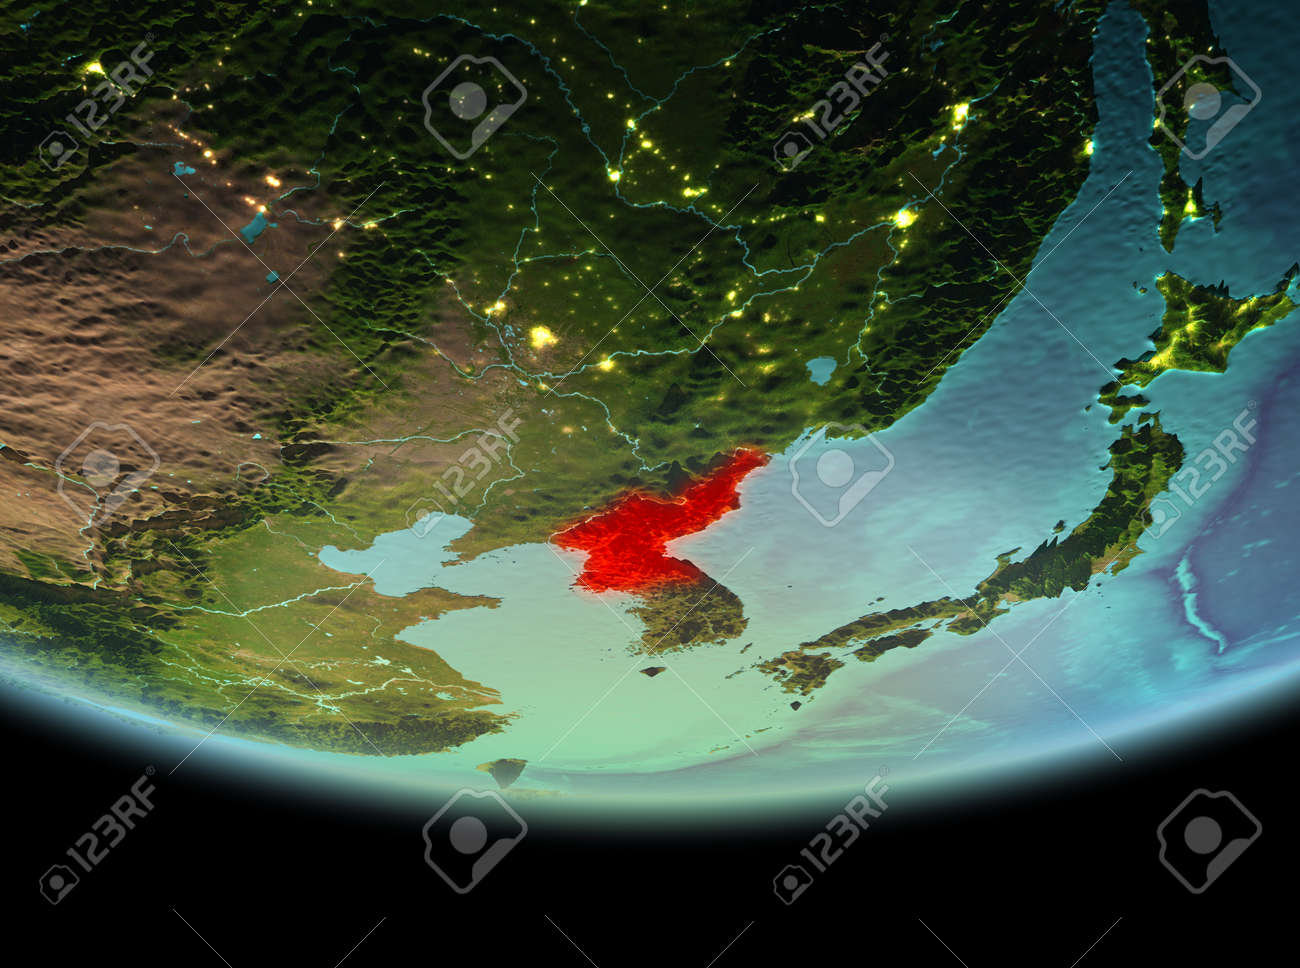 North korea from orbit of planet earth at night with highly detailed illustration north korea from orbit of planet earth at night with highly detailed surface textures 3d illustration gumiabroncs Image collections